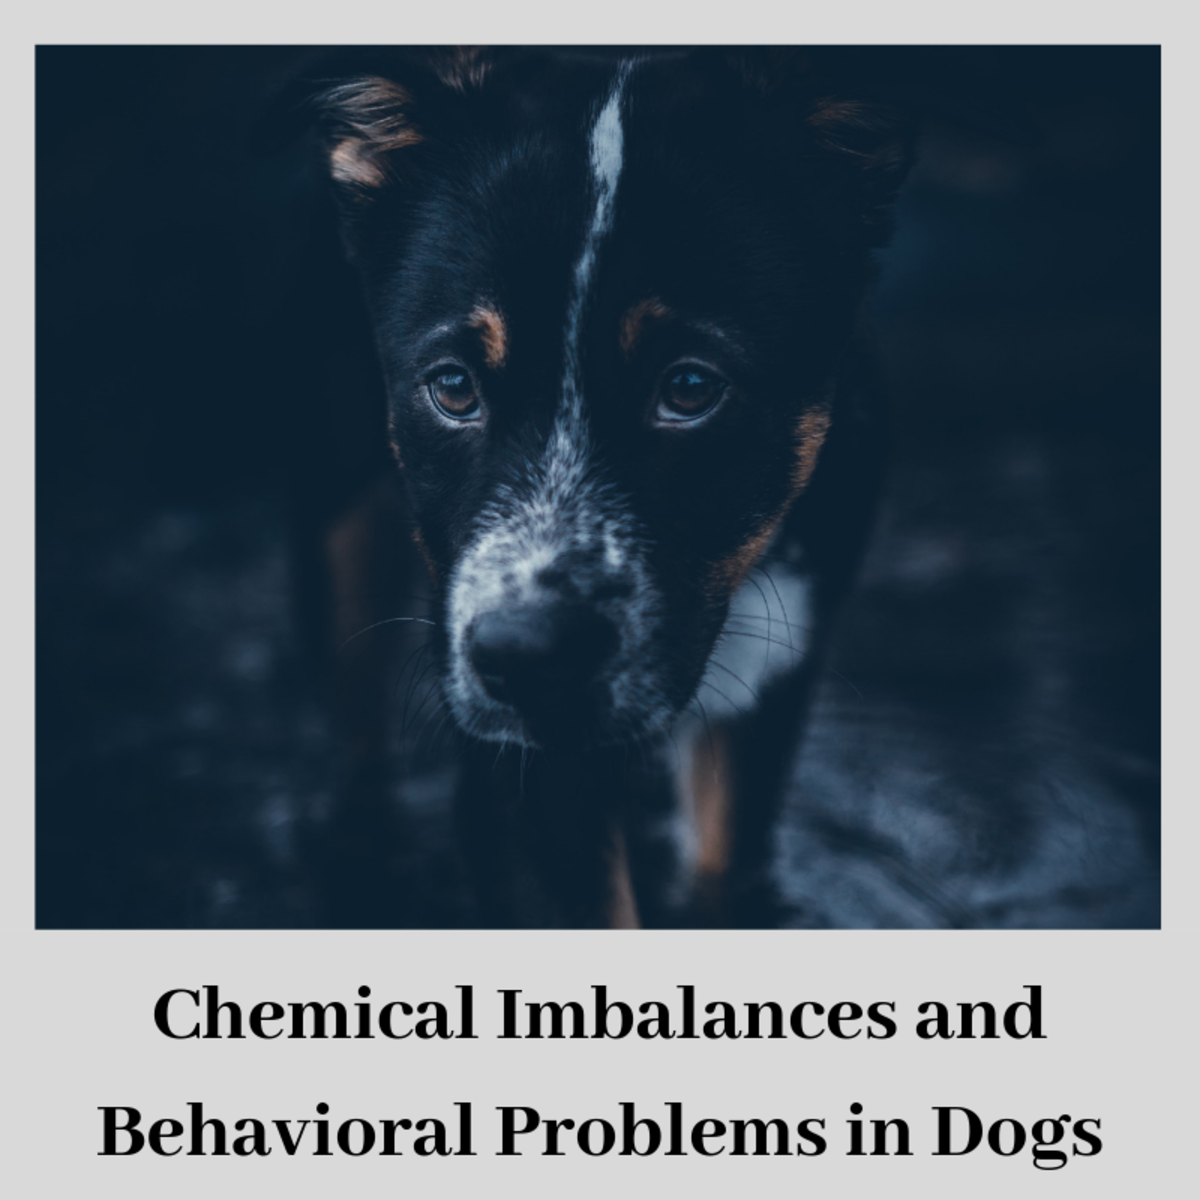 Dog Brain Chemistry and the Use of Medications and Behavior Modification